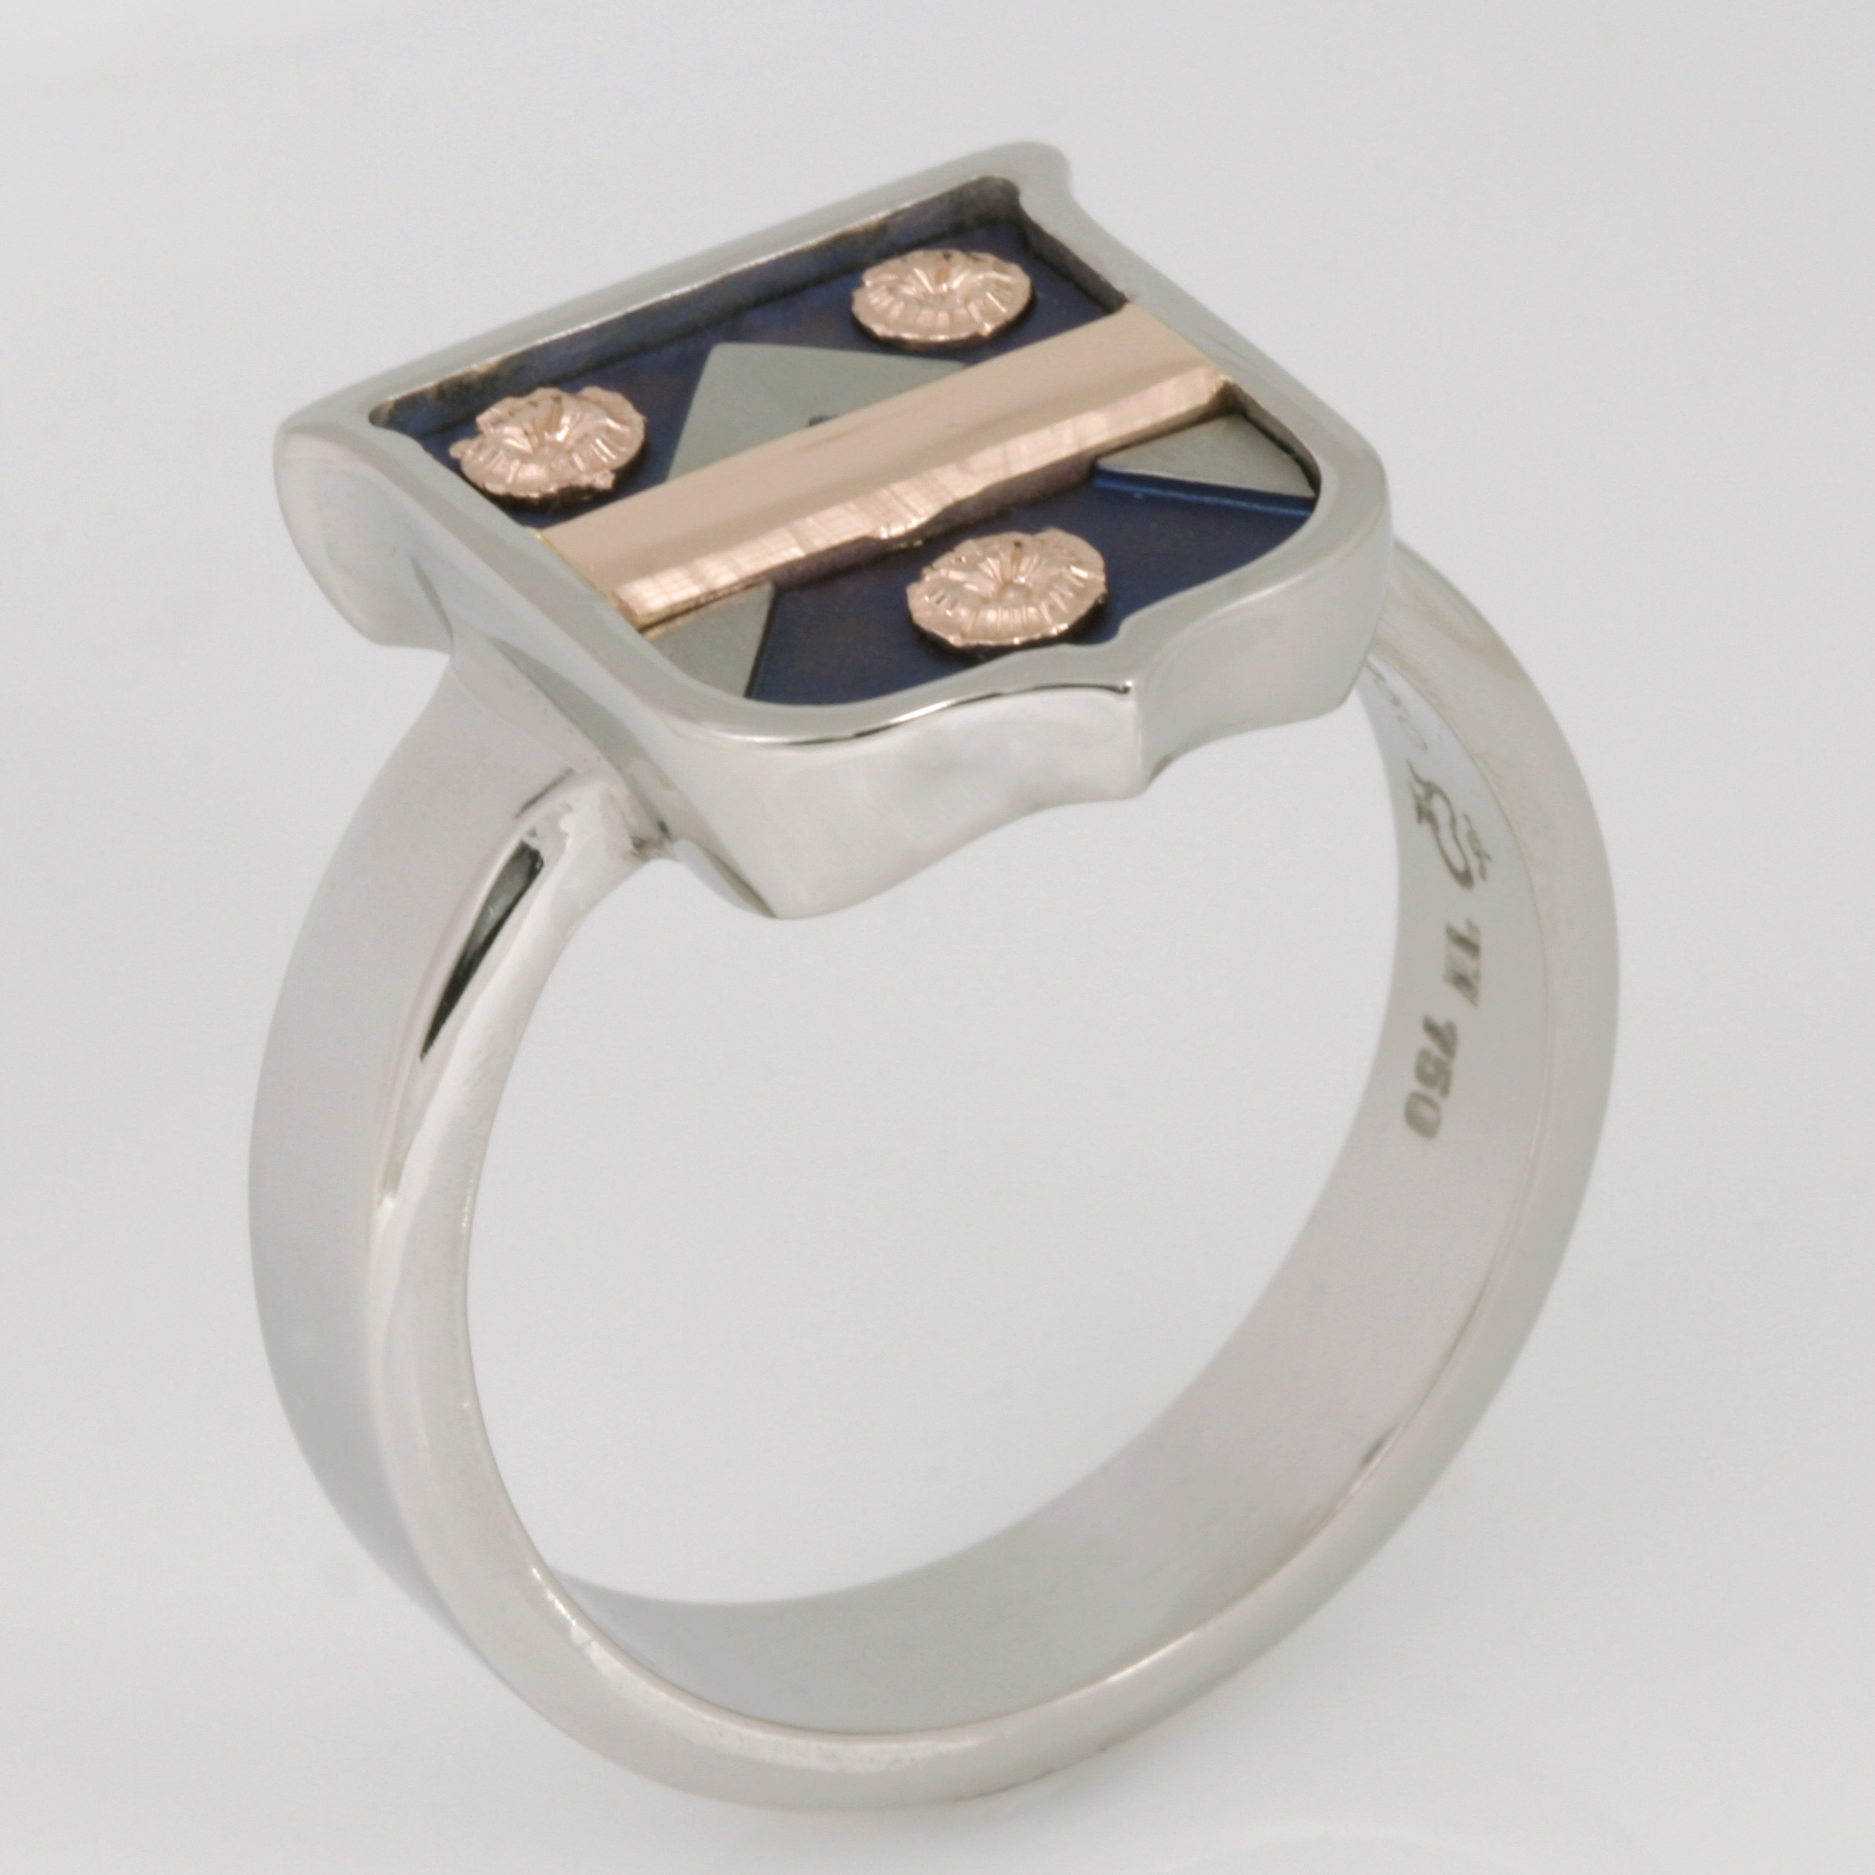 Handmade gents palladium, 18ct rose gold and titanium oxidized blue shield ring